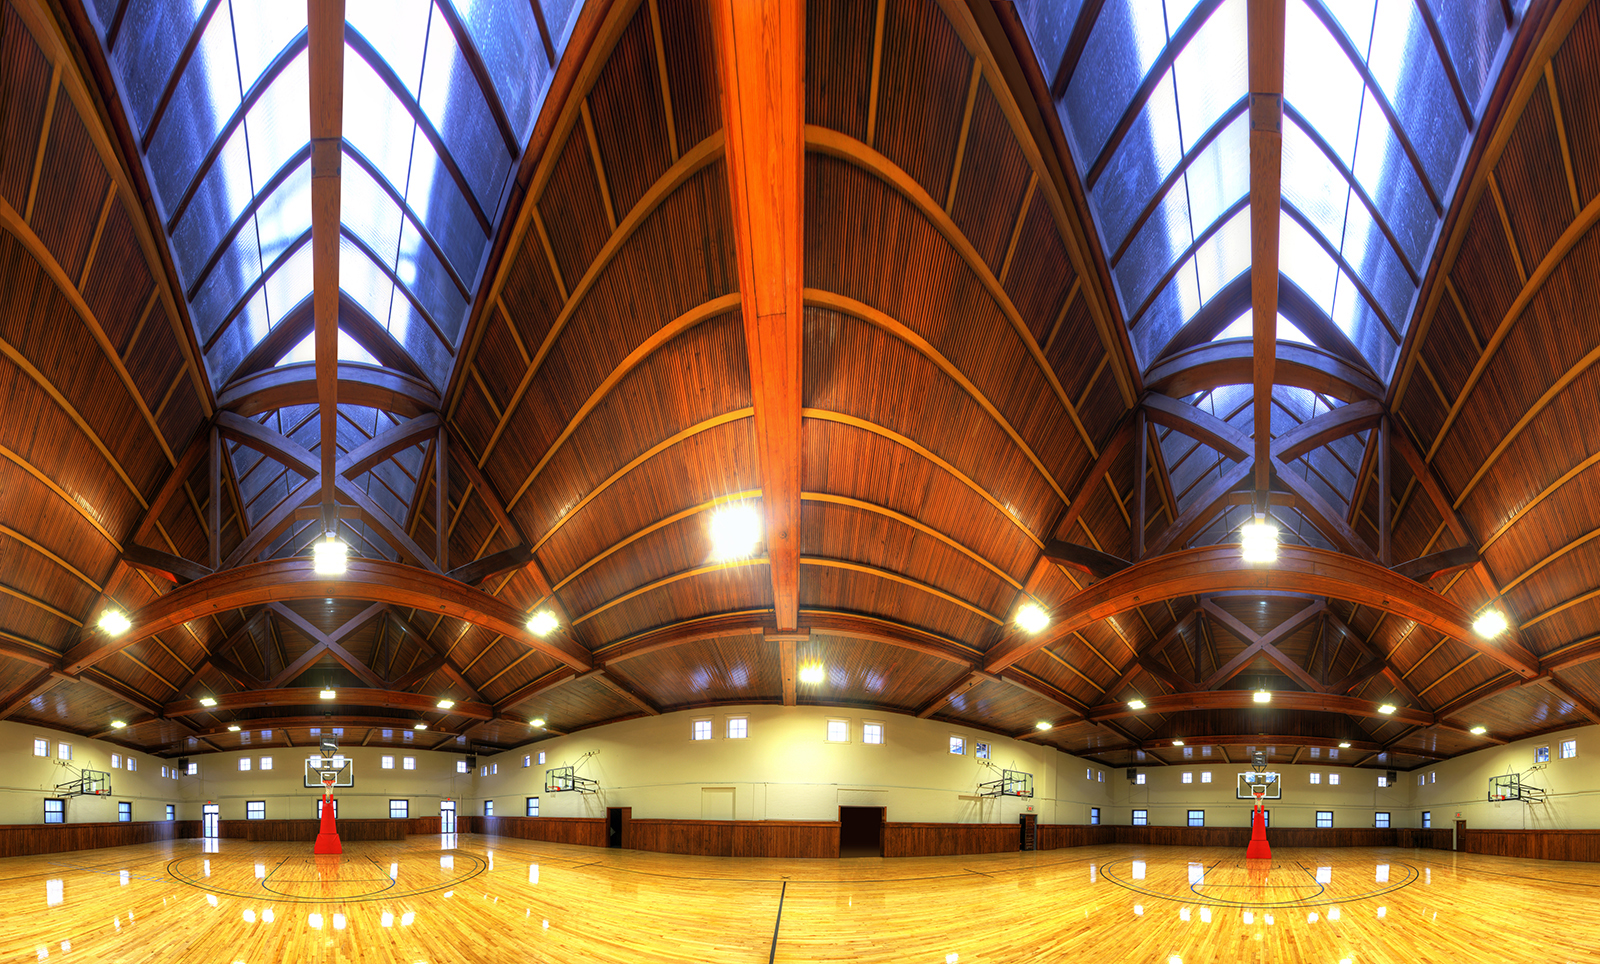 Edwards Gymnasium